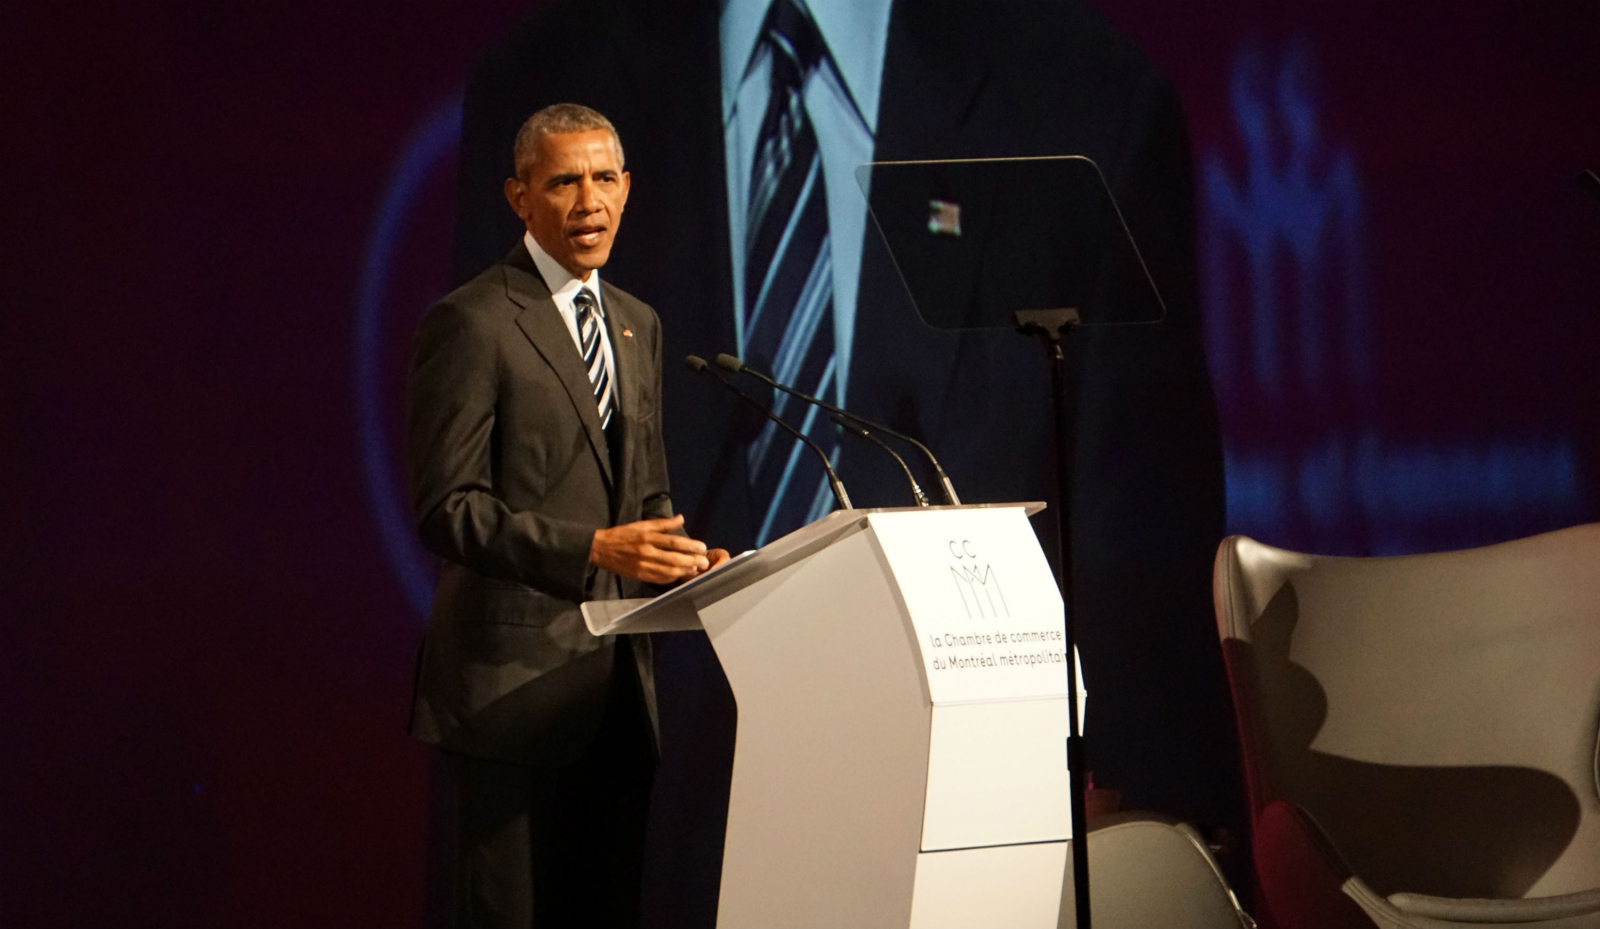 an introduction to the room for interpretation barack obama the president of the united states Passage of health care reform  united states: the barack obama administration  president barack obama announced that us combat forces would be withdrawn from.